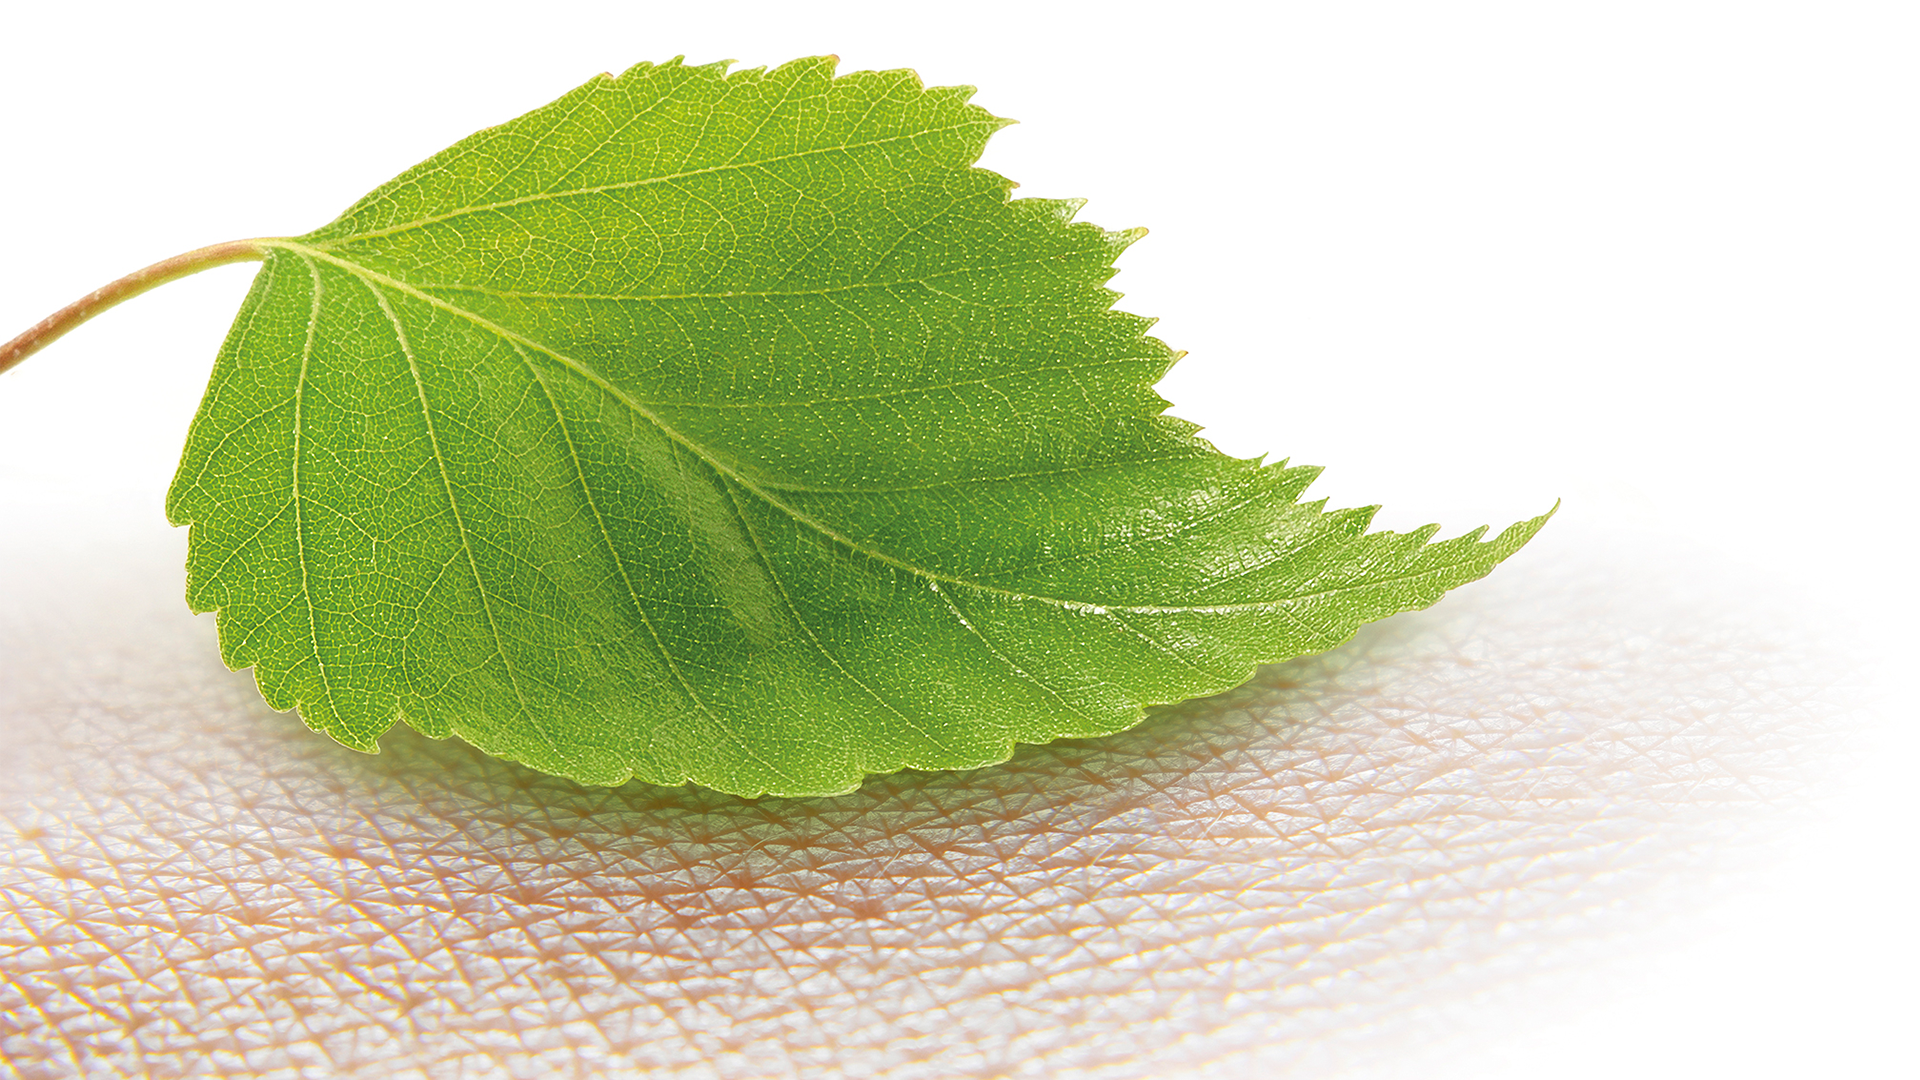 Natural healing: UPM's FibDex® replaces synthetic materials in wound dressing with wood-based nanocellulose